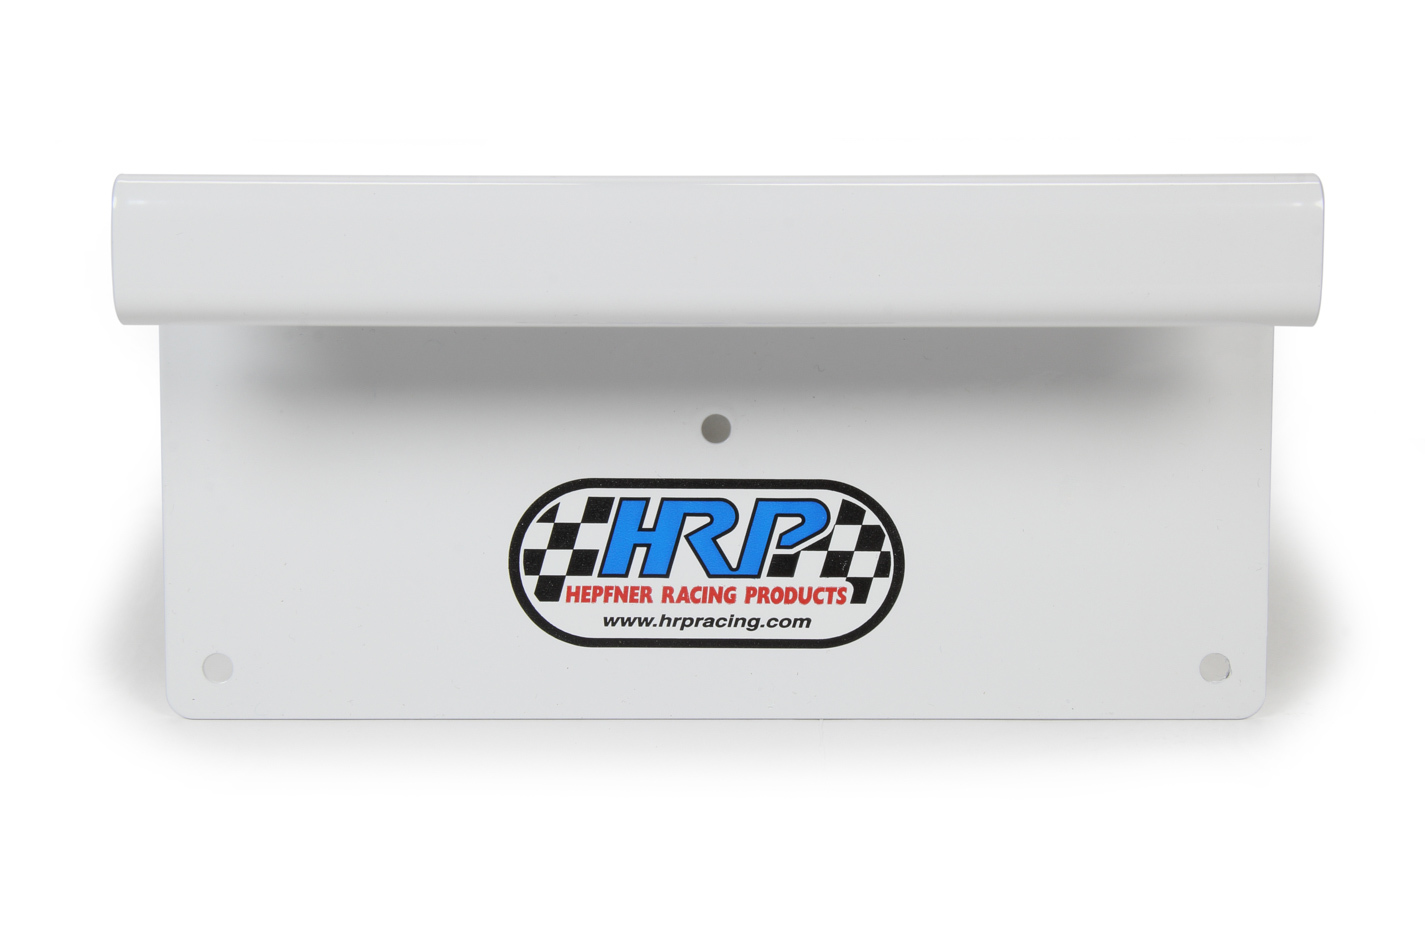 Hepfner Racing Products HRP6262-WHT Fuel Funnel Hook, Aluminum, White Powder Coat, Triangle Style Funnels, Each